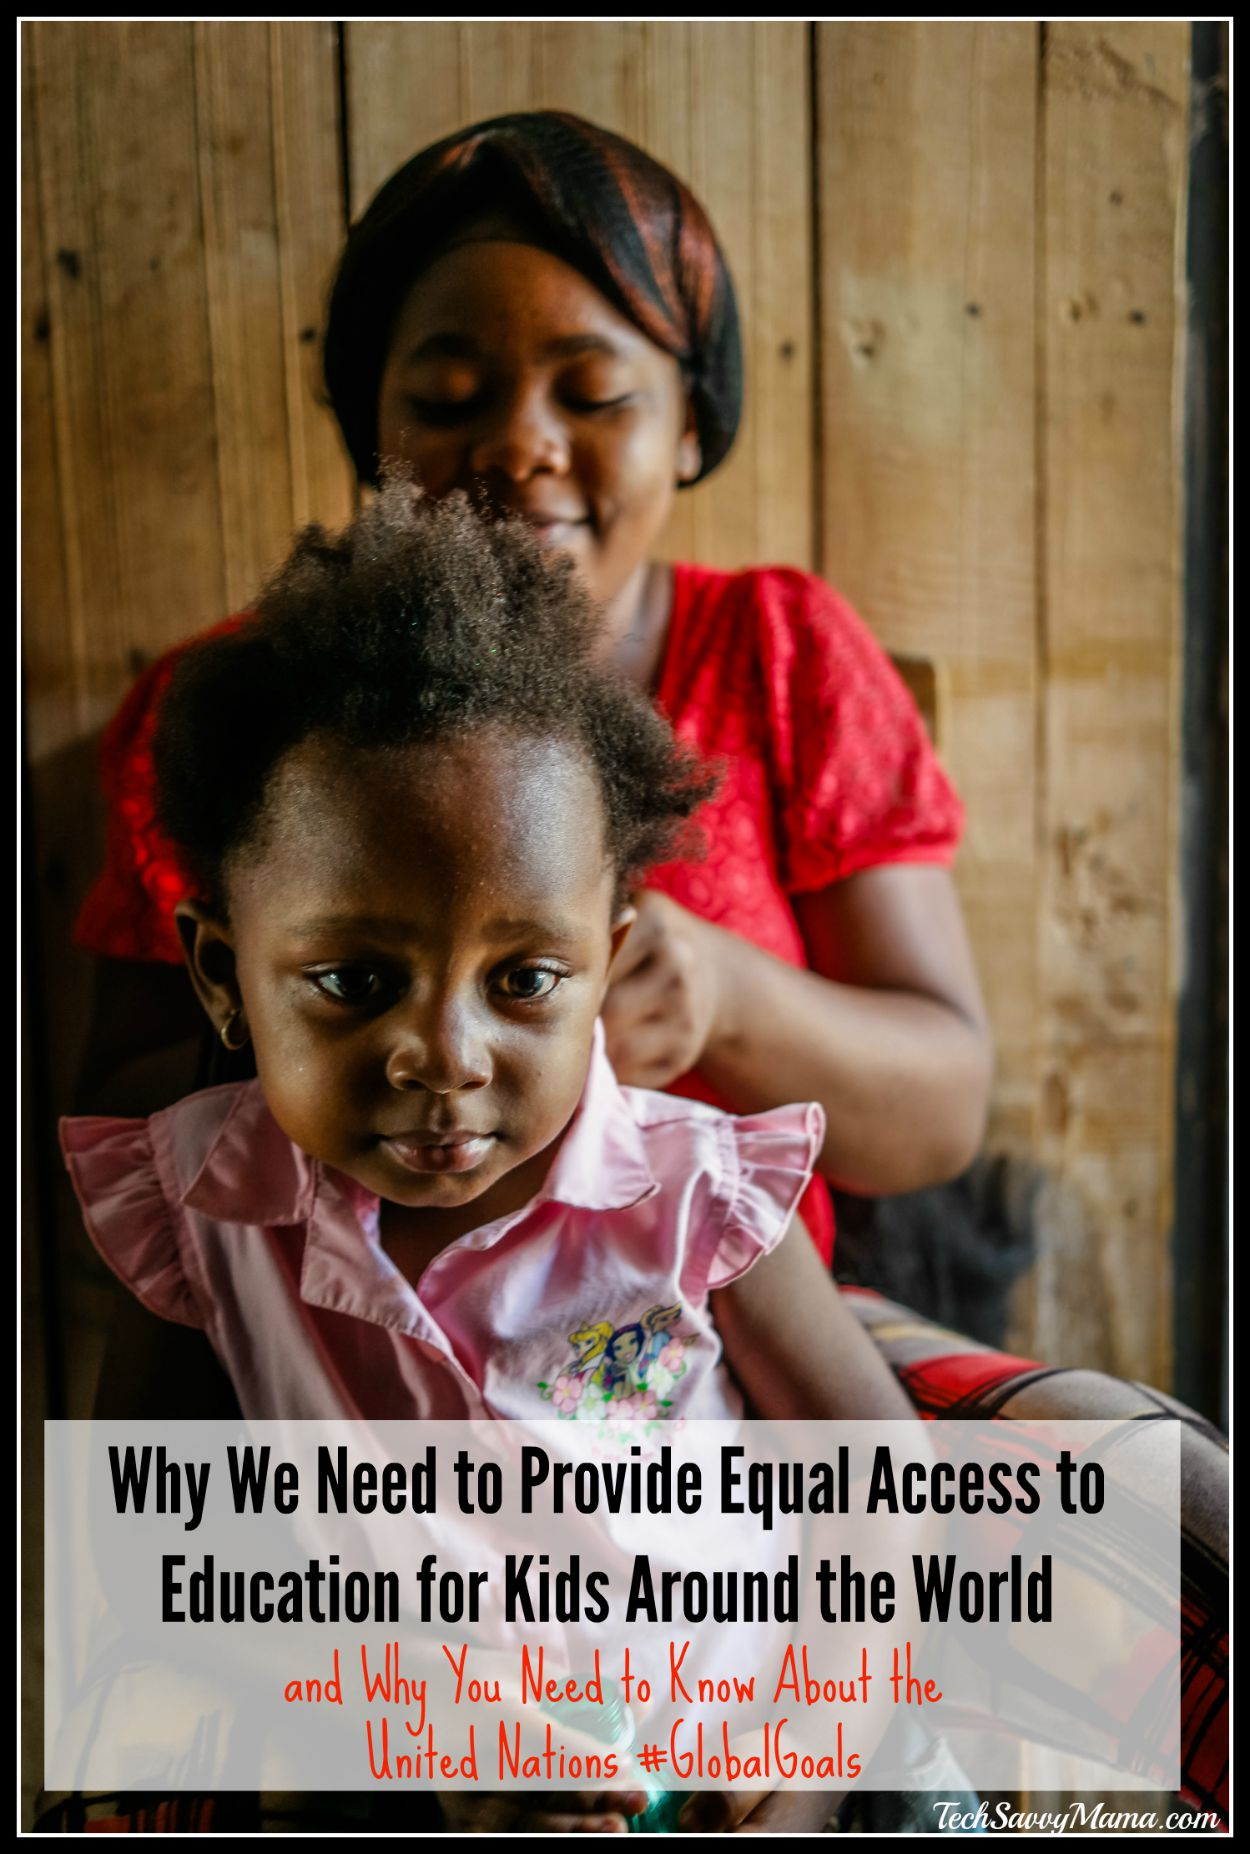 access to education and equqlity of